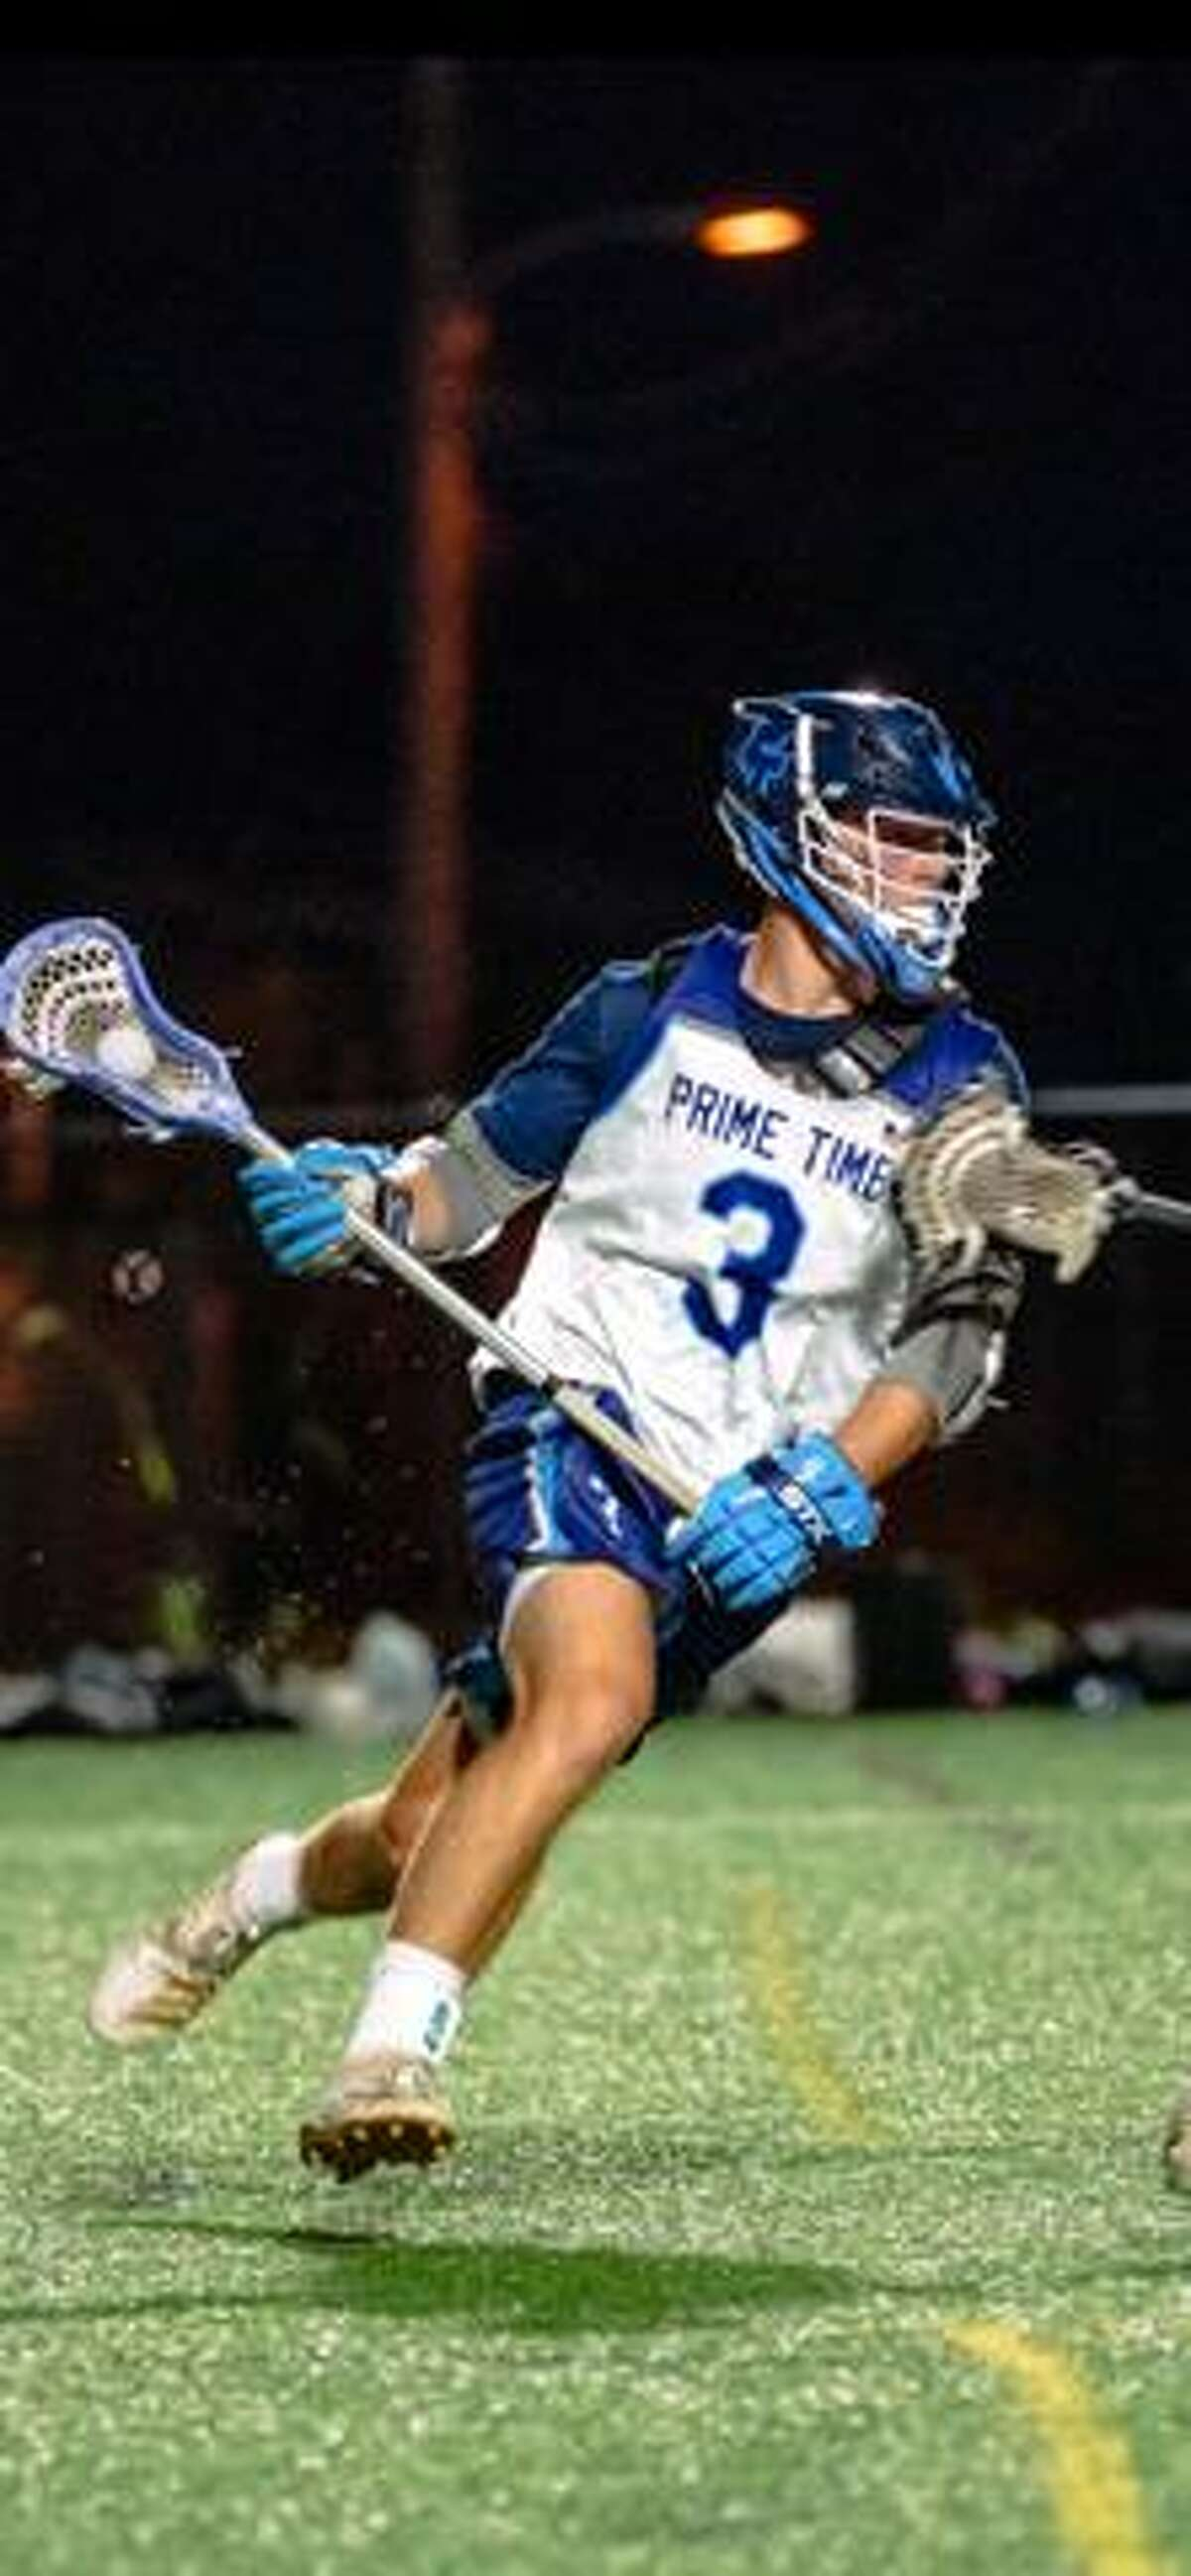 St. Joseph junior midfielder Jack Coughlin has committed to the United States Naval Academy.